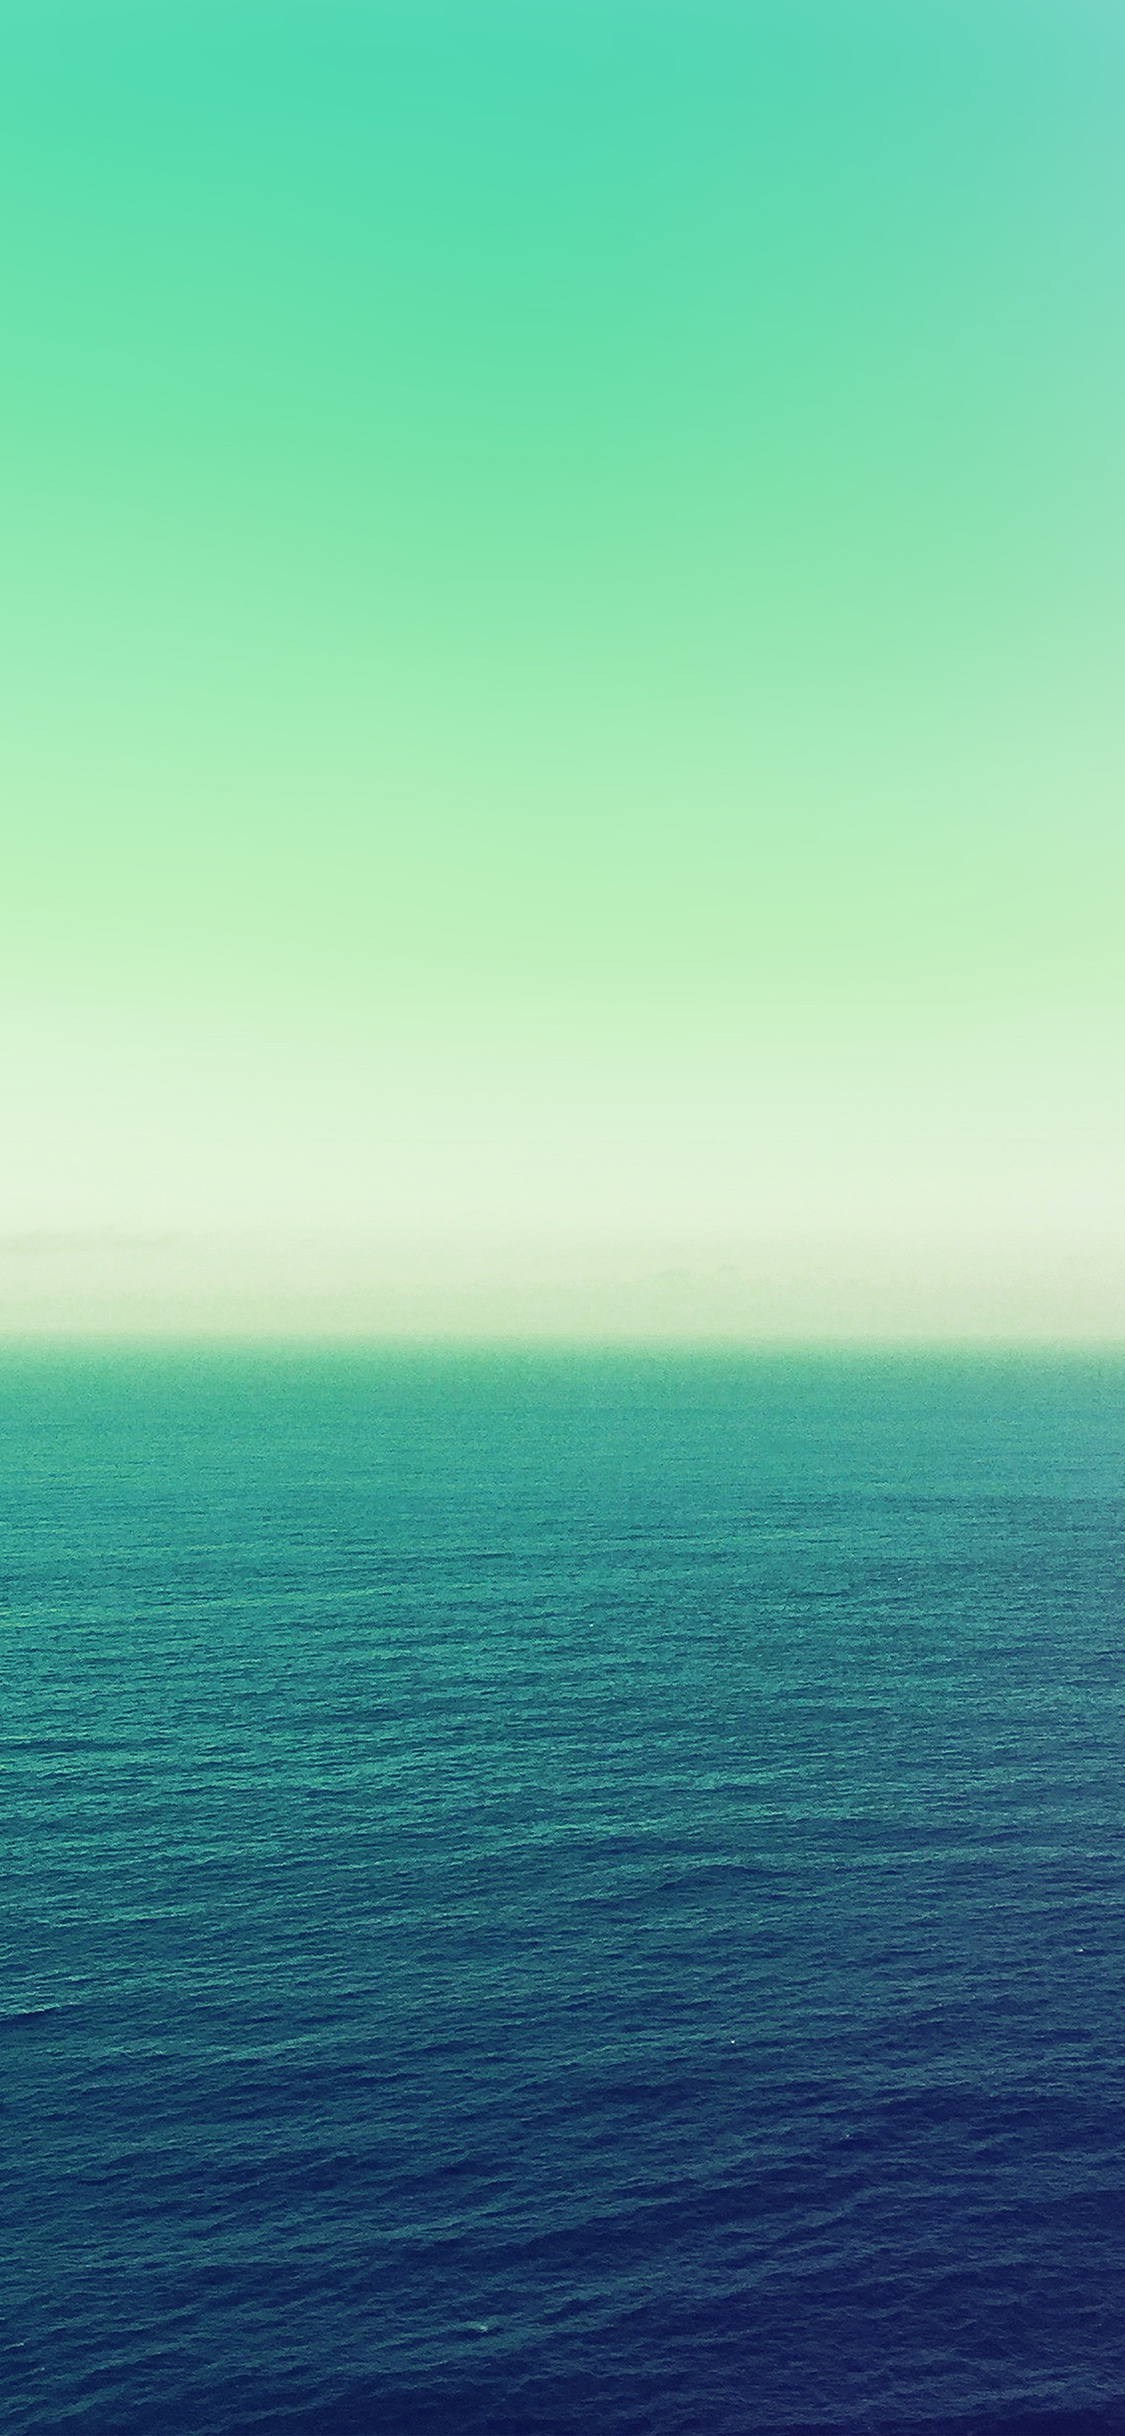 iPhoneXpapers.com-Apple-iPhone-wallpaper-na11-calm-sea-green-ocean-water-summer-day-nature